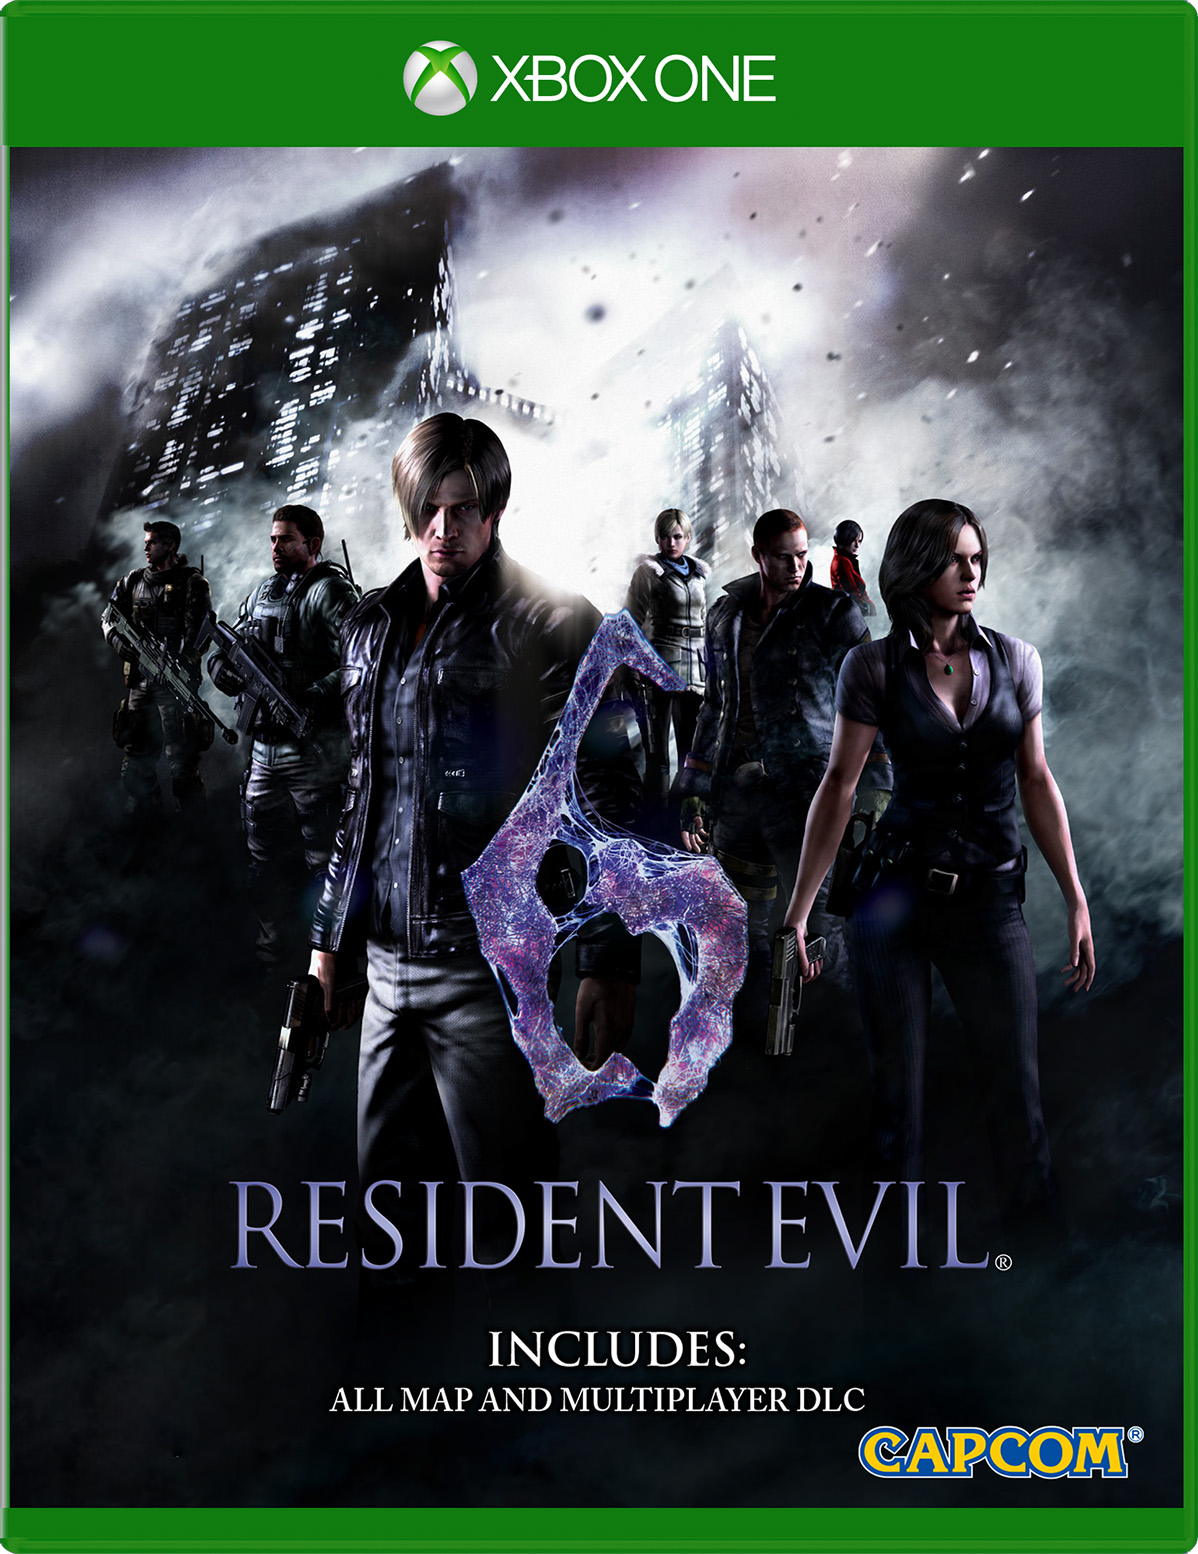 Resident Evil 6 for Xbox One